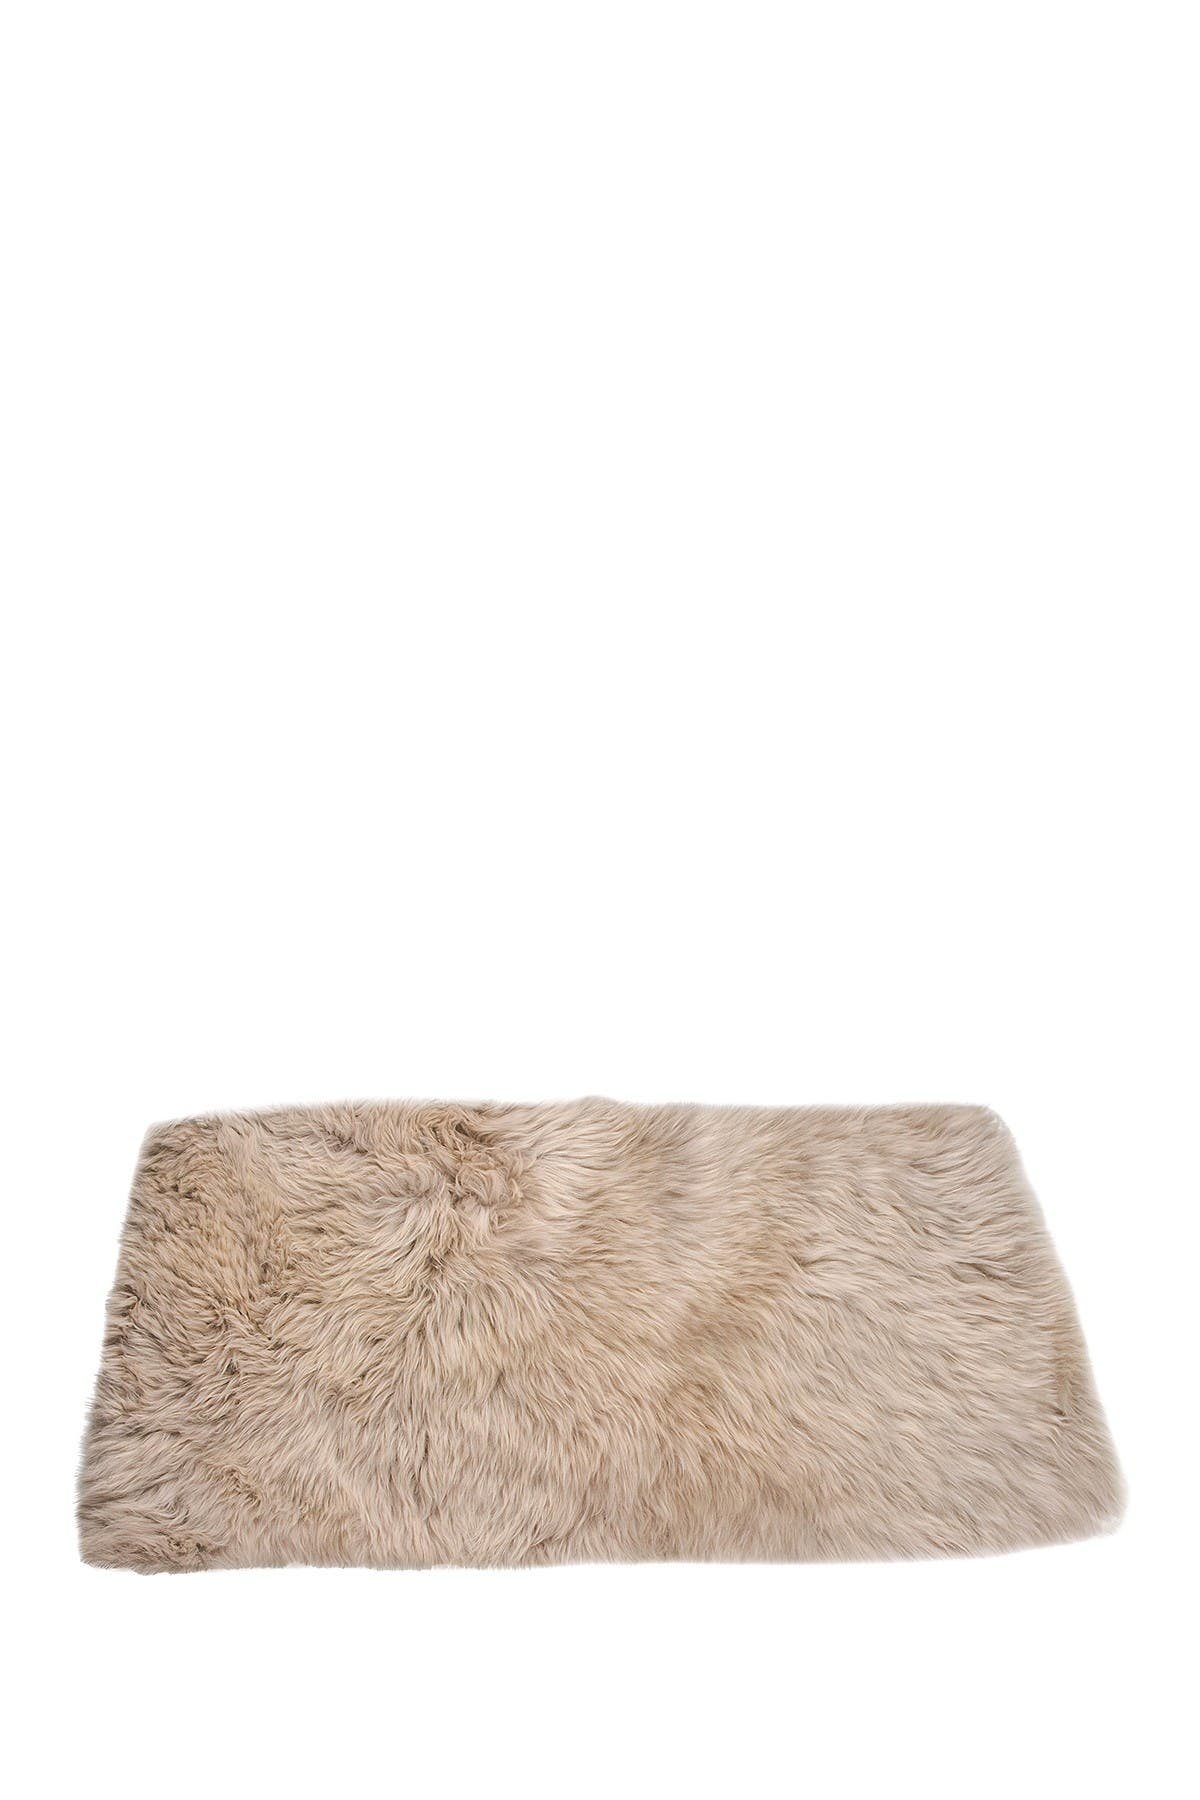 Image of Natural New Zealand Rectangular Sheepskin Throw - 3ft X 5ft - Taupe